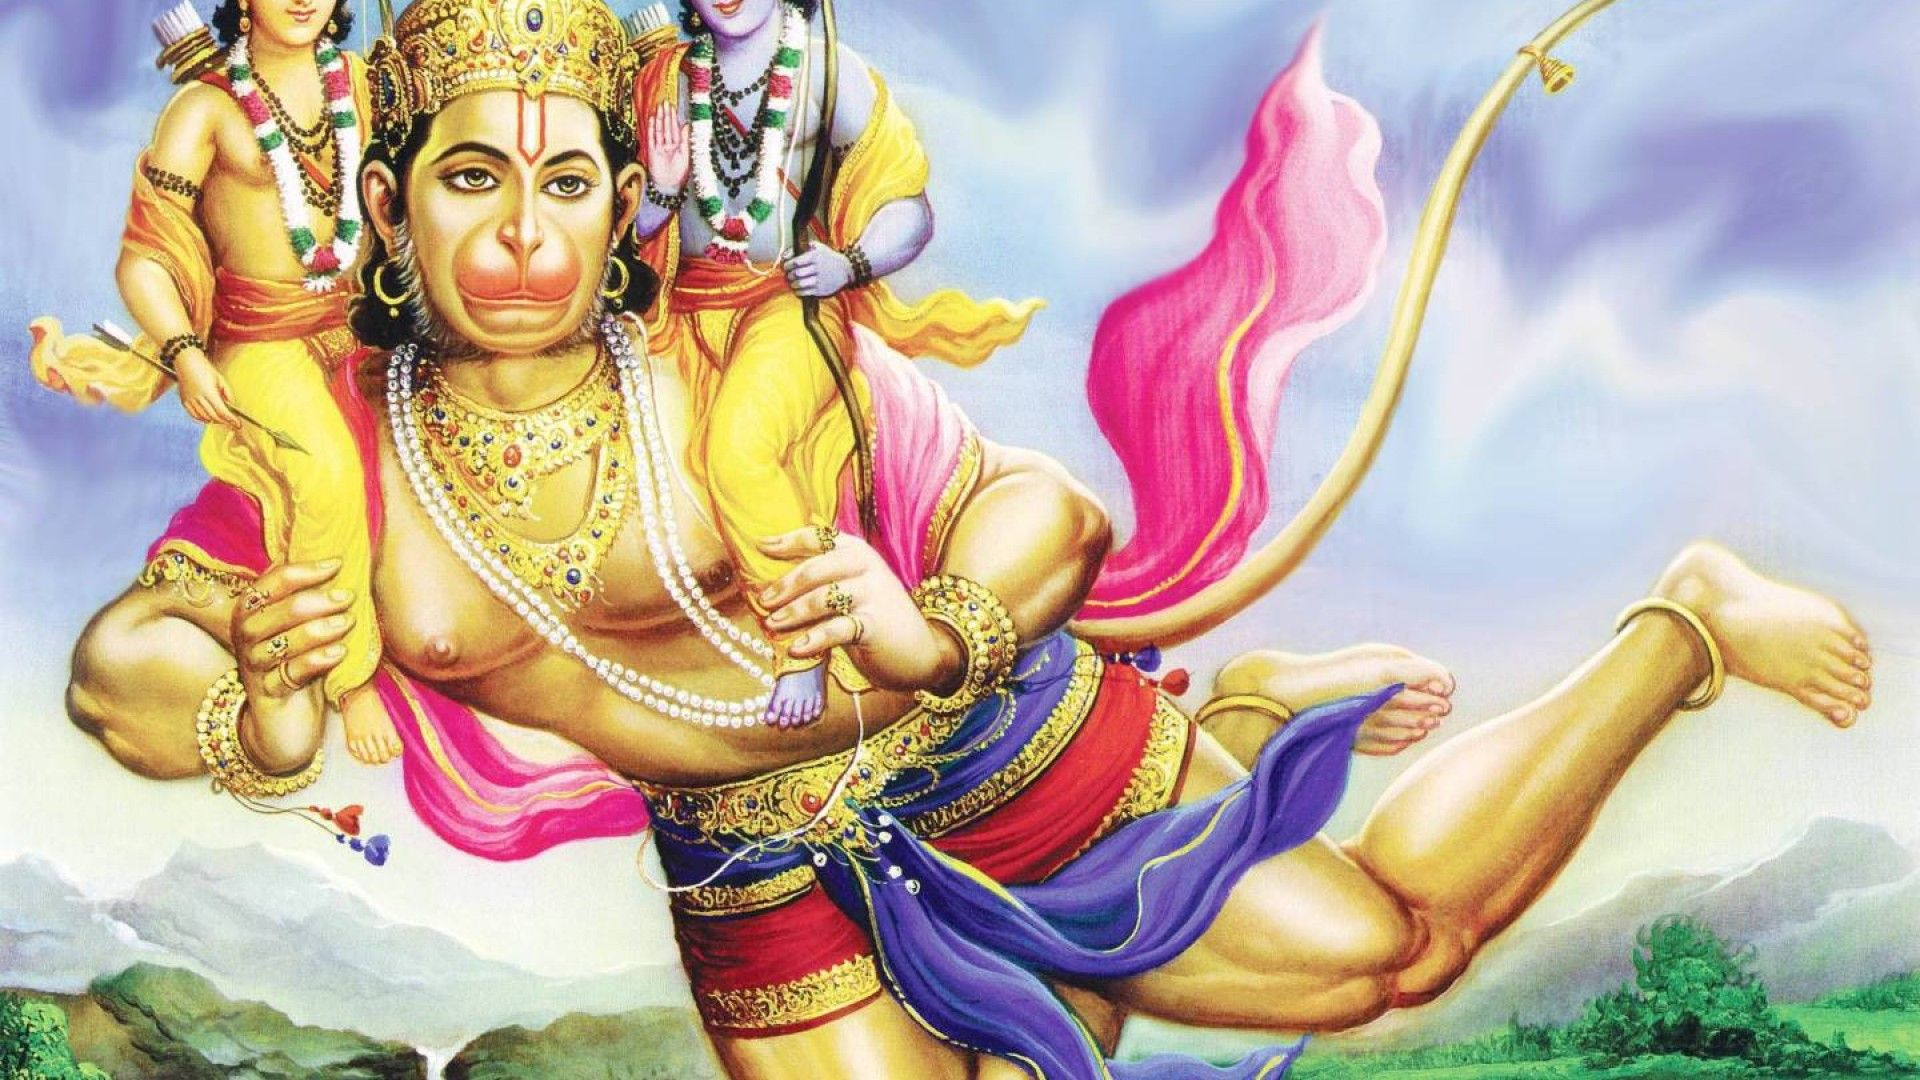 god hanuman hd wallpaper 1920x1080